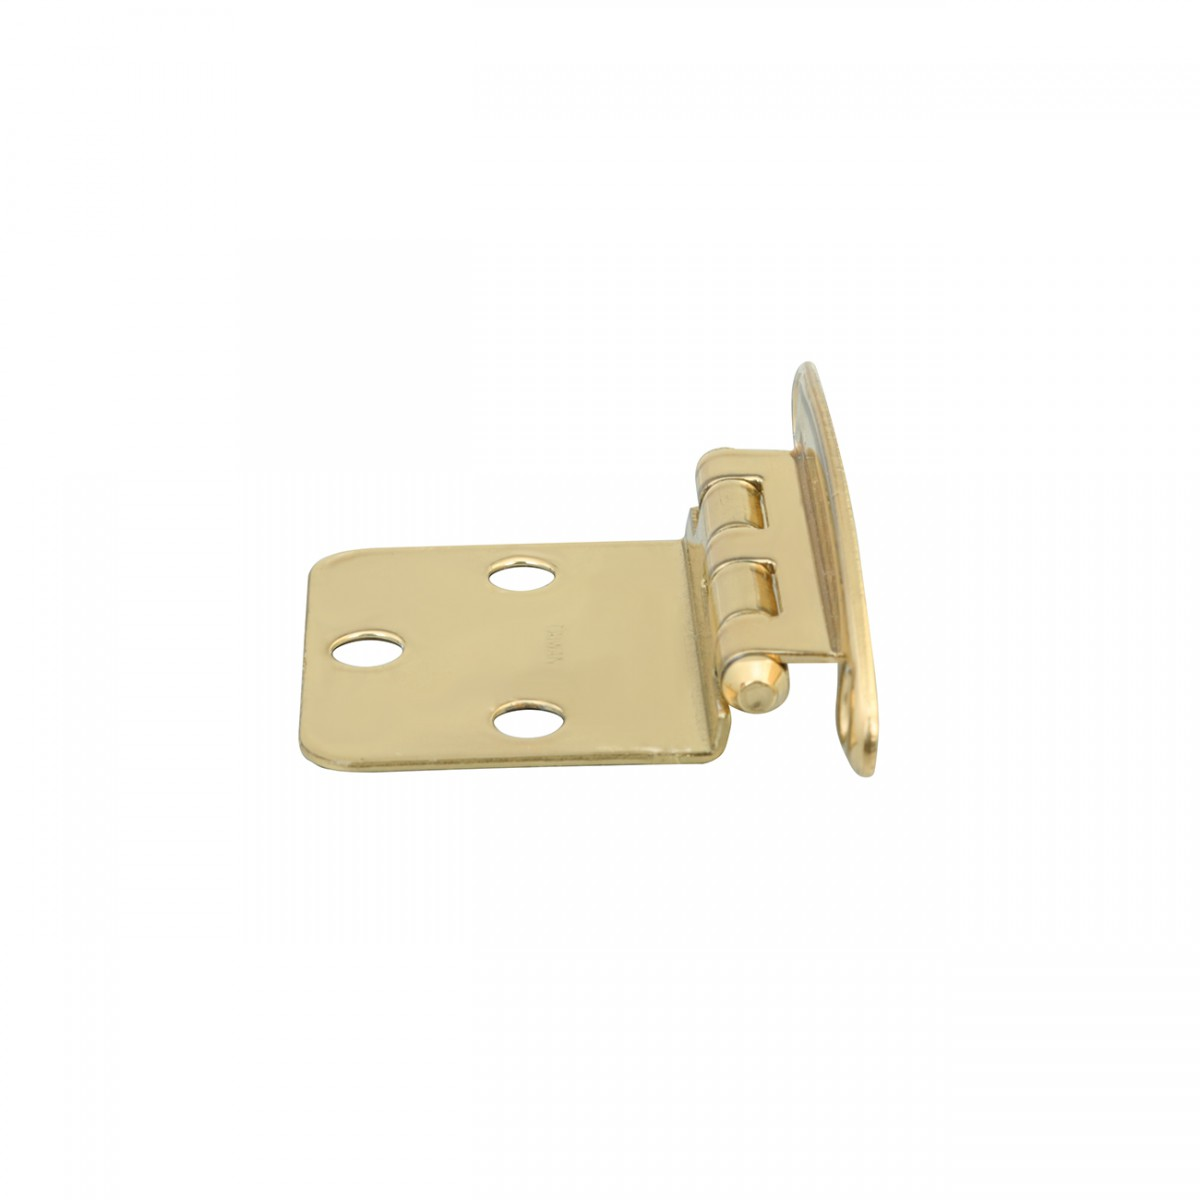 12 Cabinet Hinges Semiconcealed Solid Brass 1.75 W Door Hinges Door Hinge Solid Brass Hinge